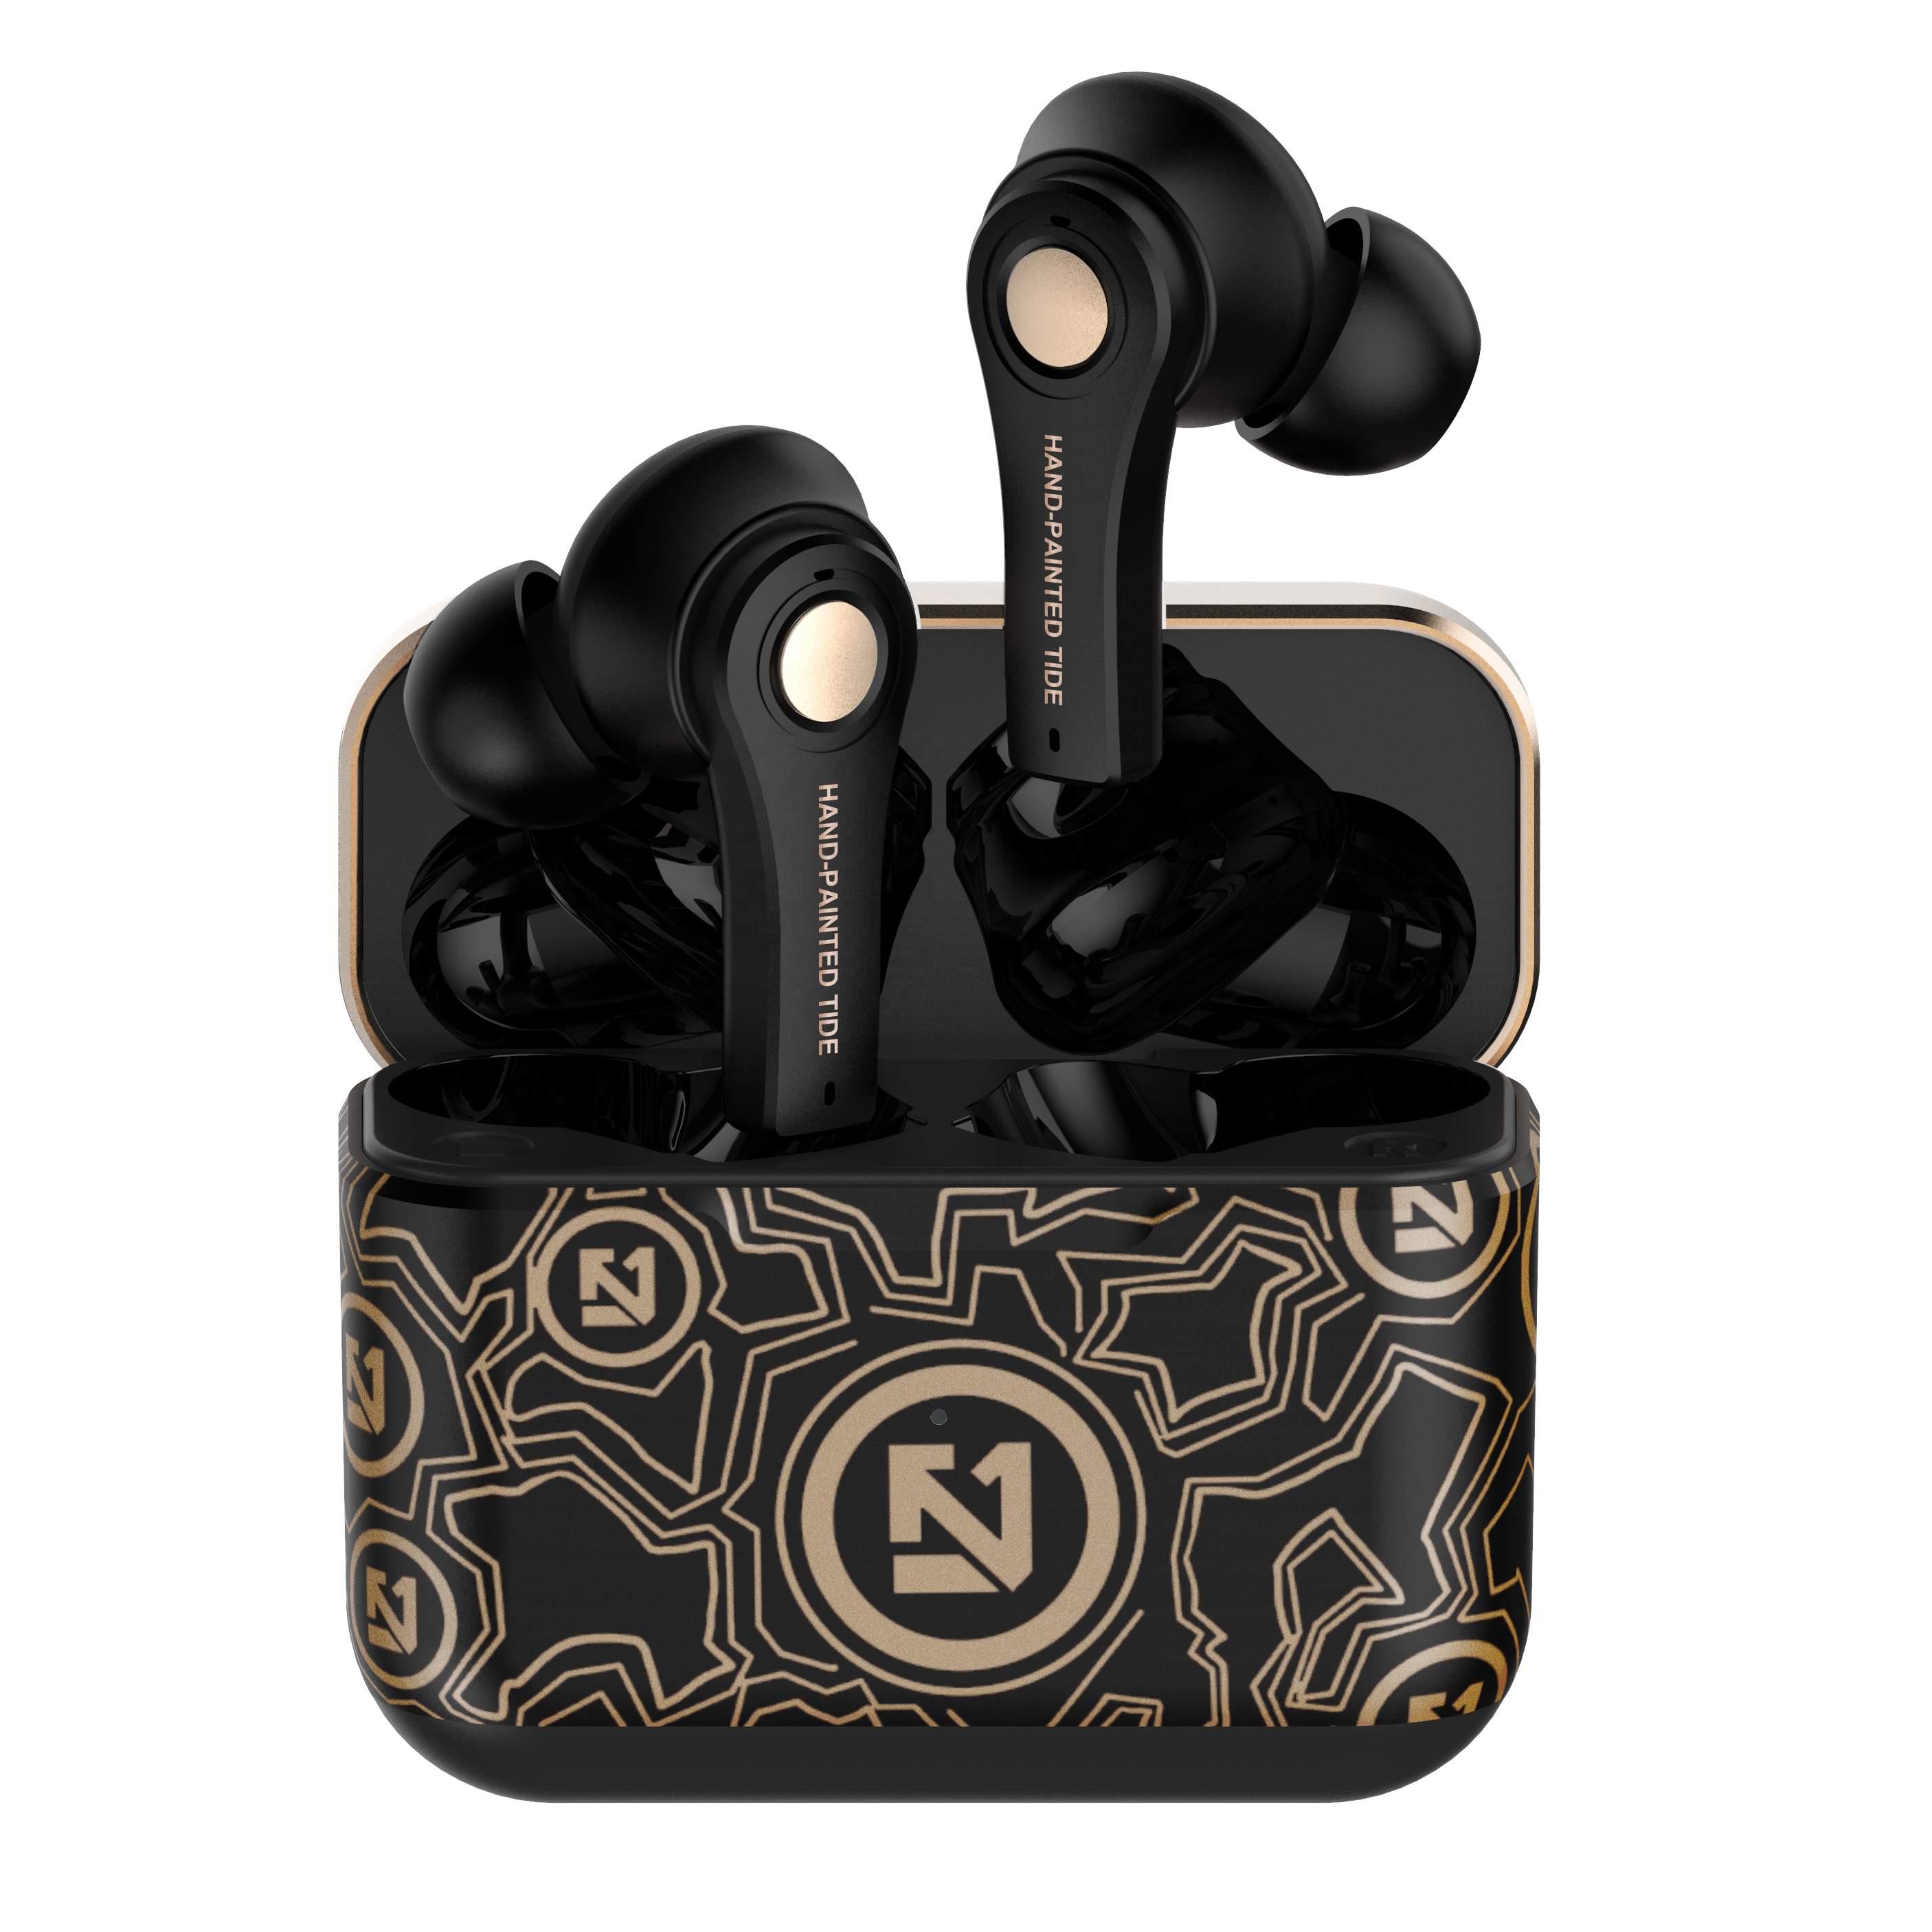 TS-100 LULE Fashionable Black Bluetooth 5.0 TWS Wireless Earphone Graffiti Hand-painted Handsfree Earbuds Sport Waterproof